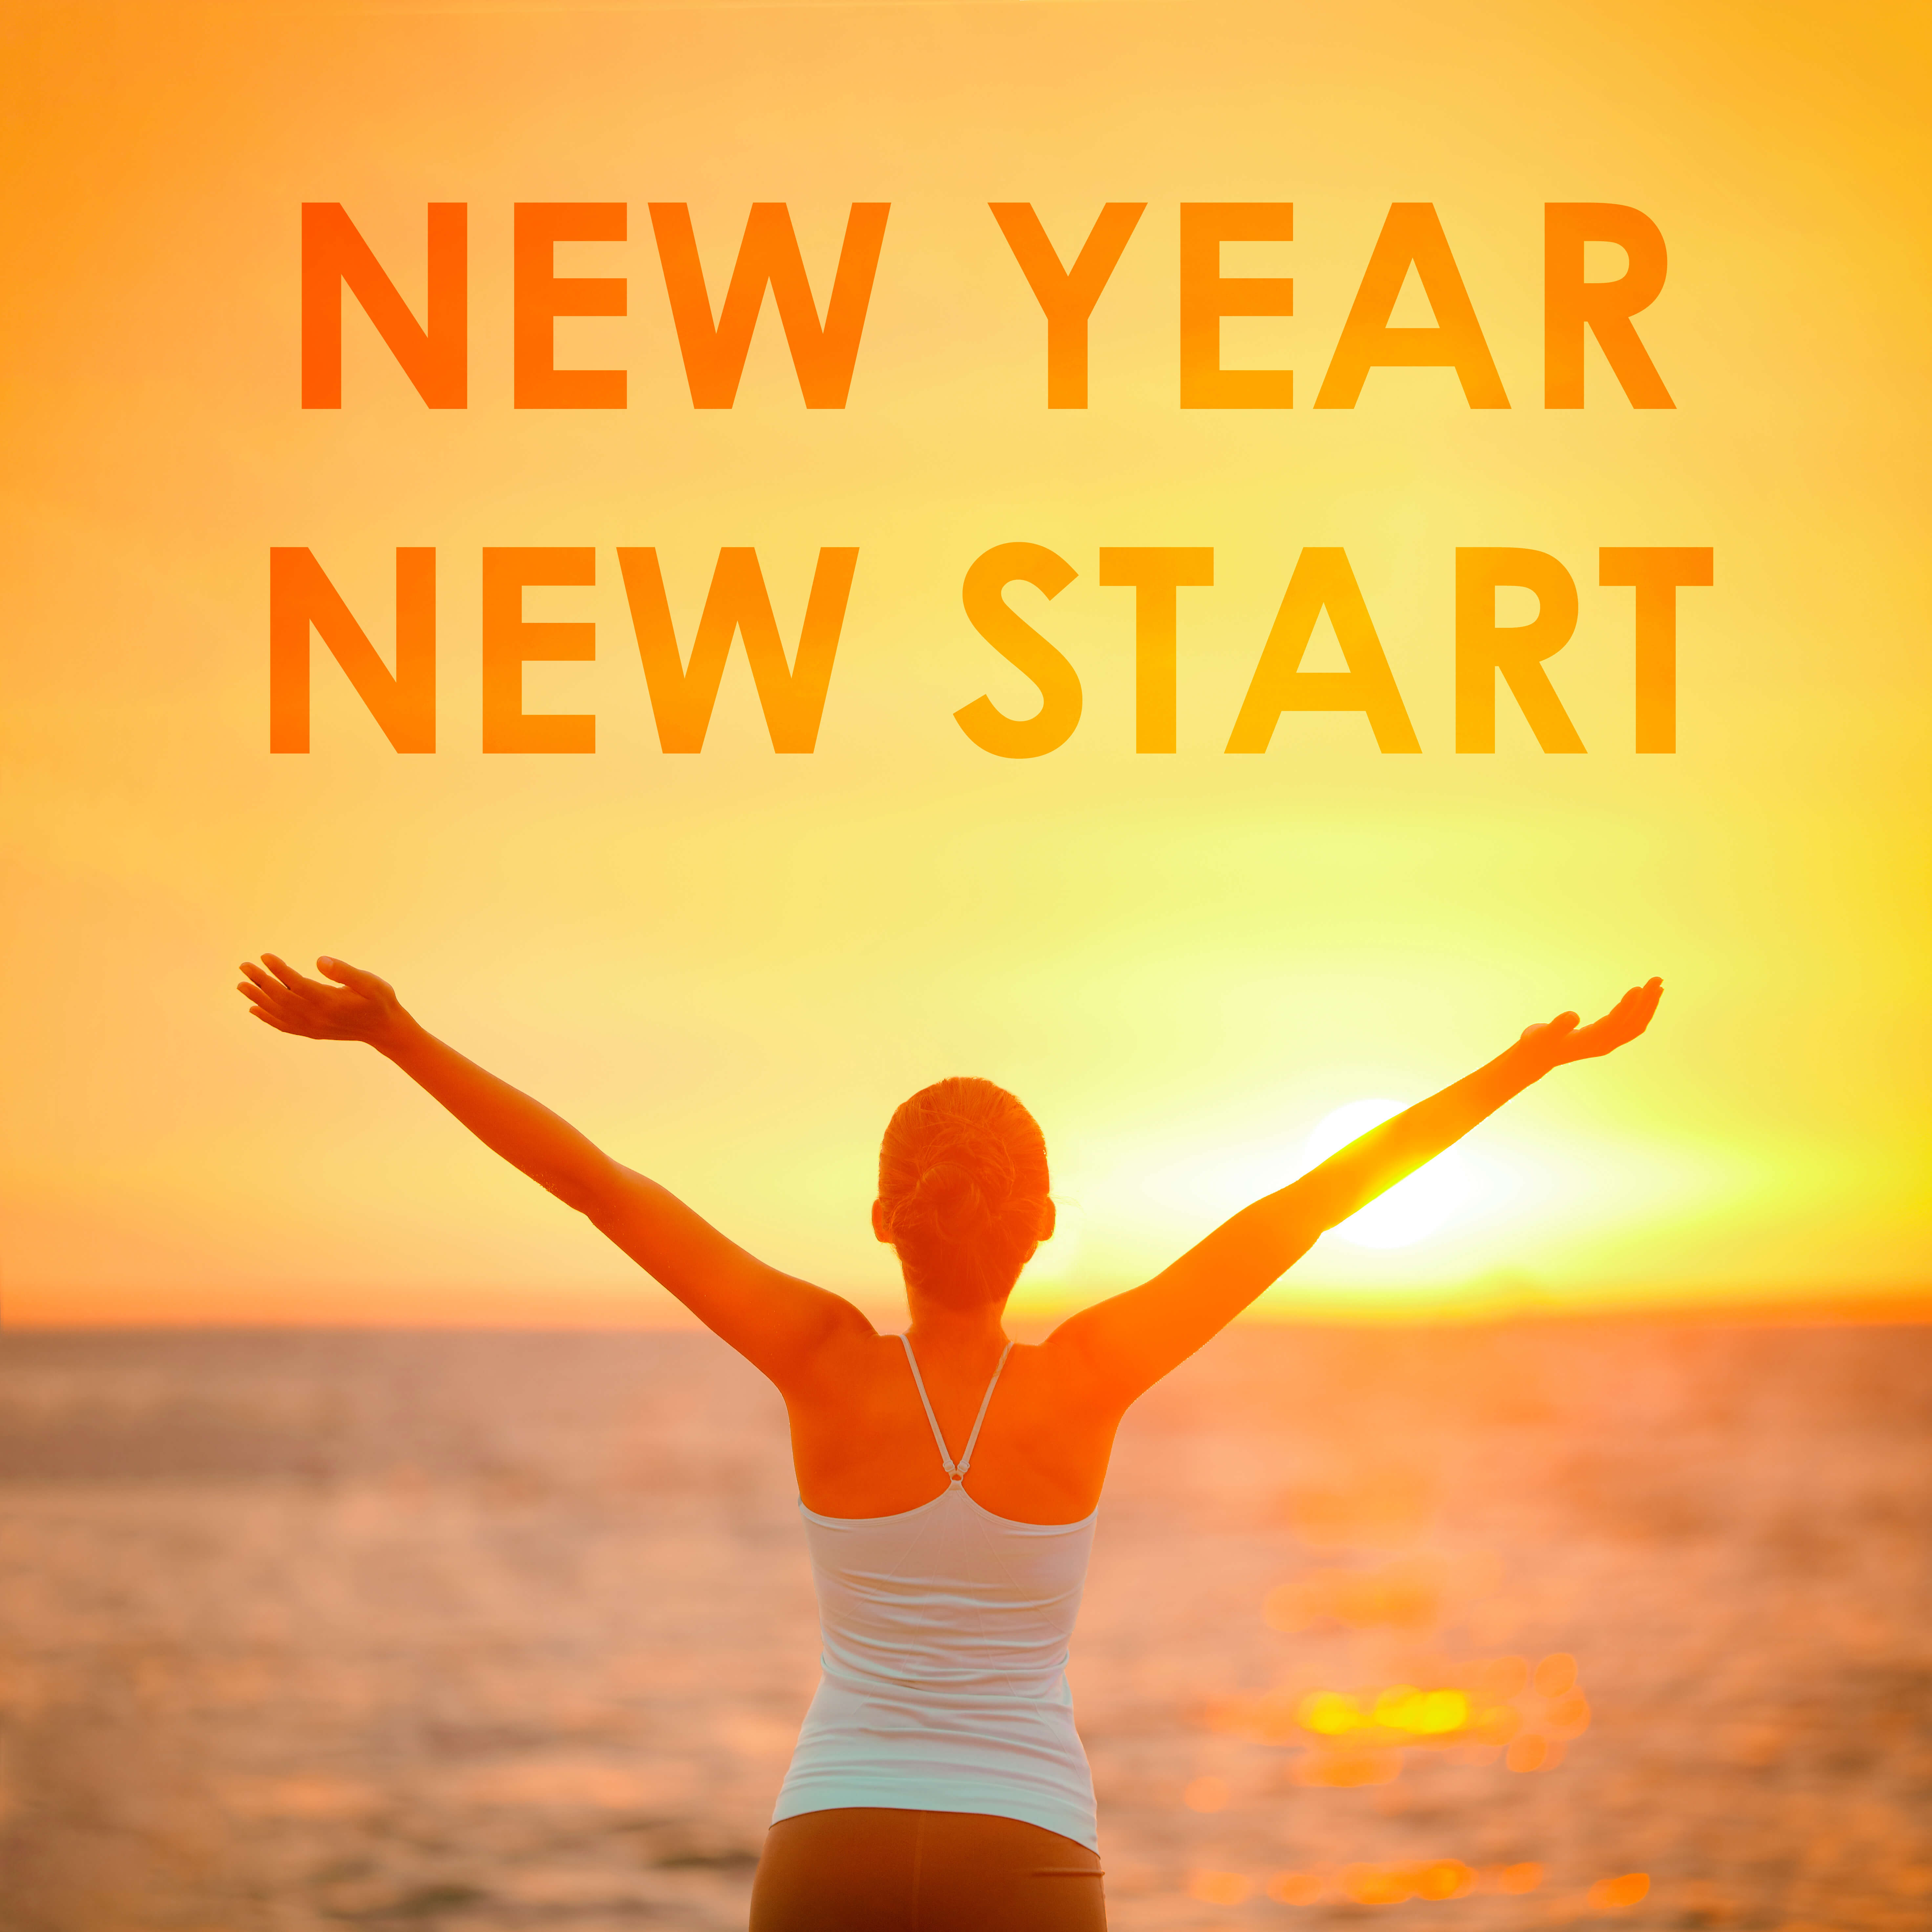 New Year New Start Motivational Message Inspirational Quotes For